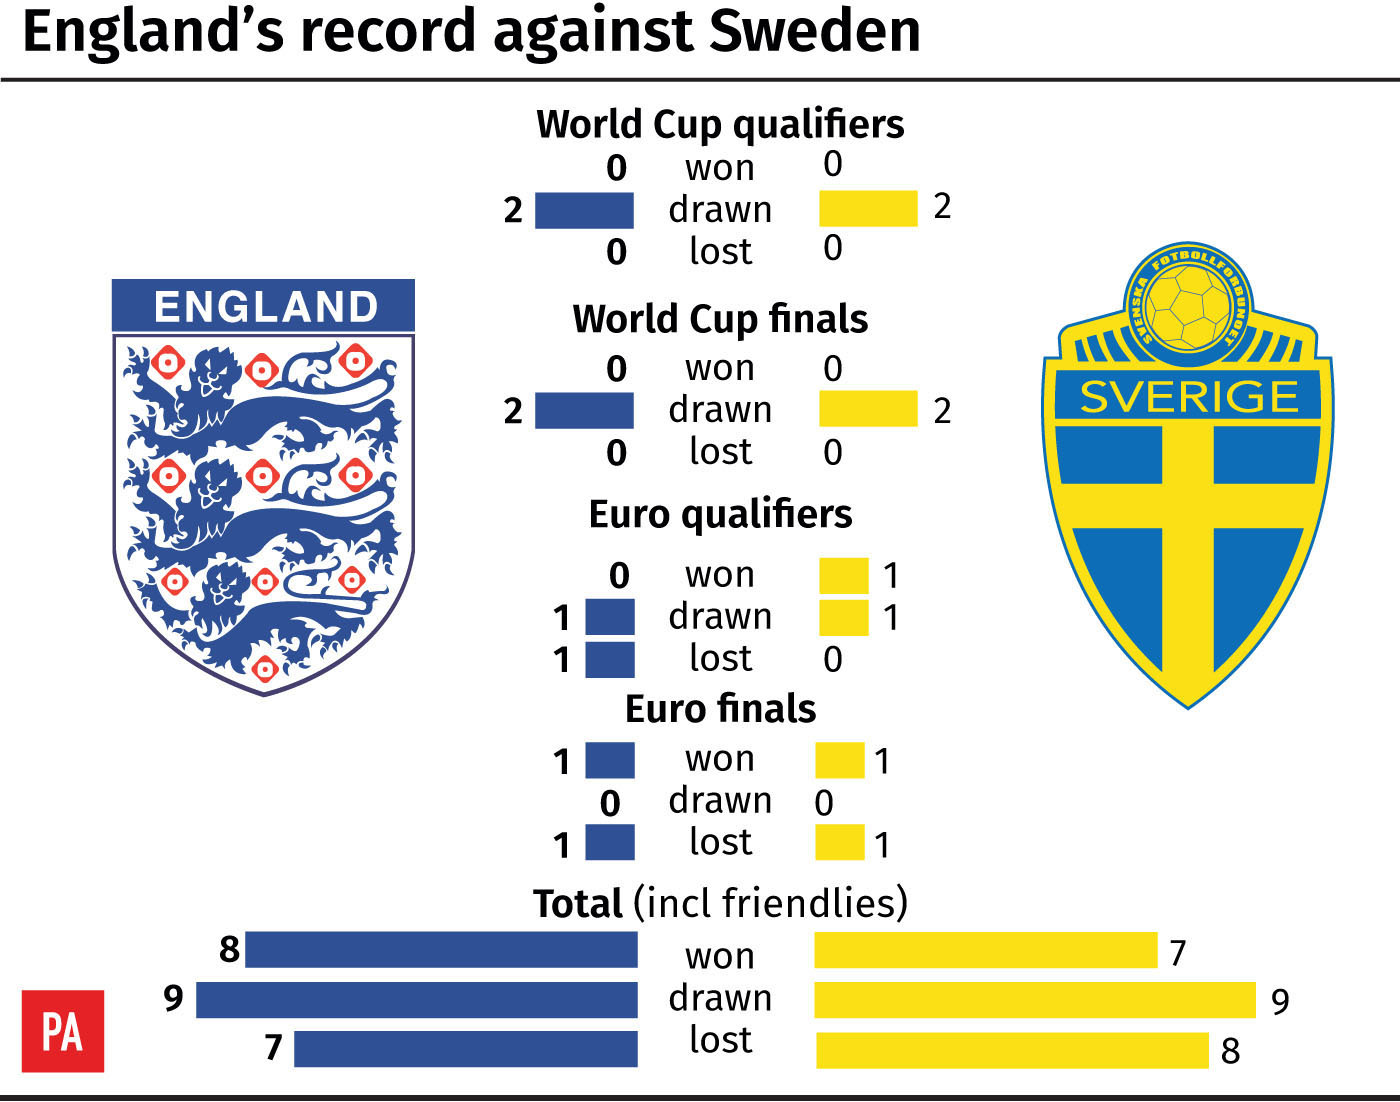 Sweden 'tough to beat', warns coach ahead of England World Cup clash